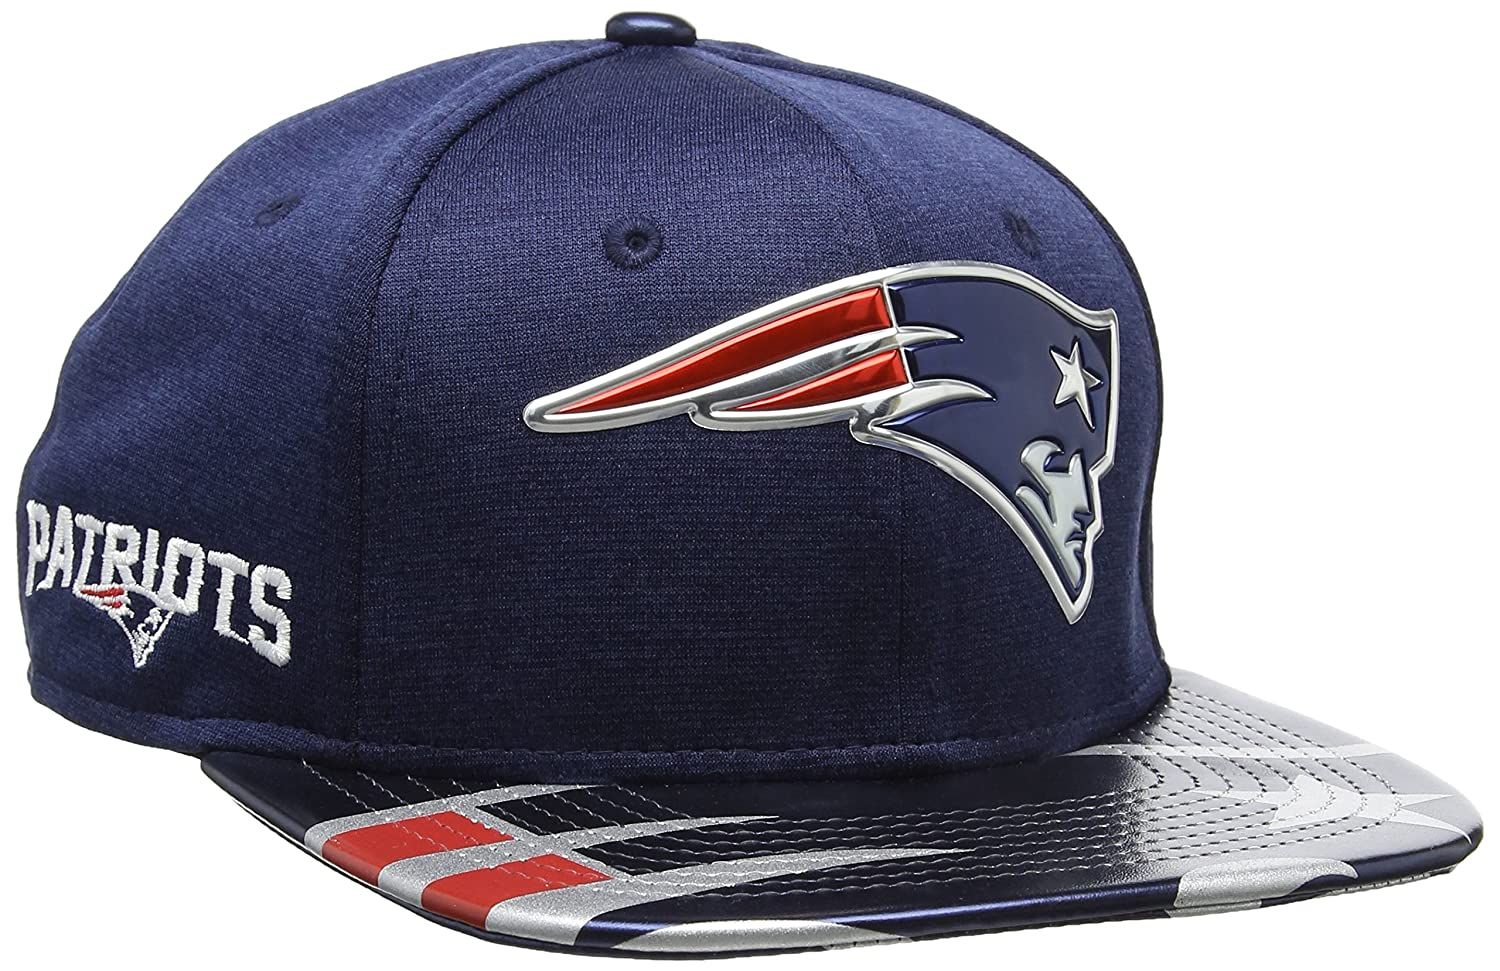 7609bffd6 New Era Men's Nfl 2017 Official on Stage 9fifty New England Patriots  Baseball Cap: Amazon.co.uk: Sports & Outdoors